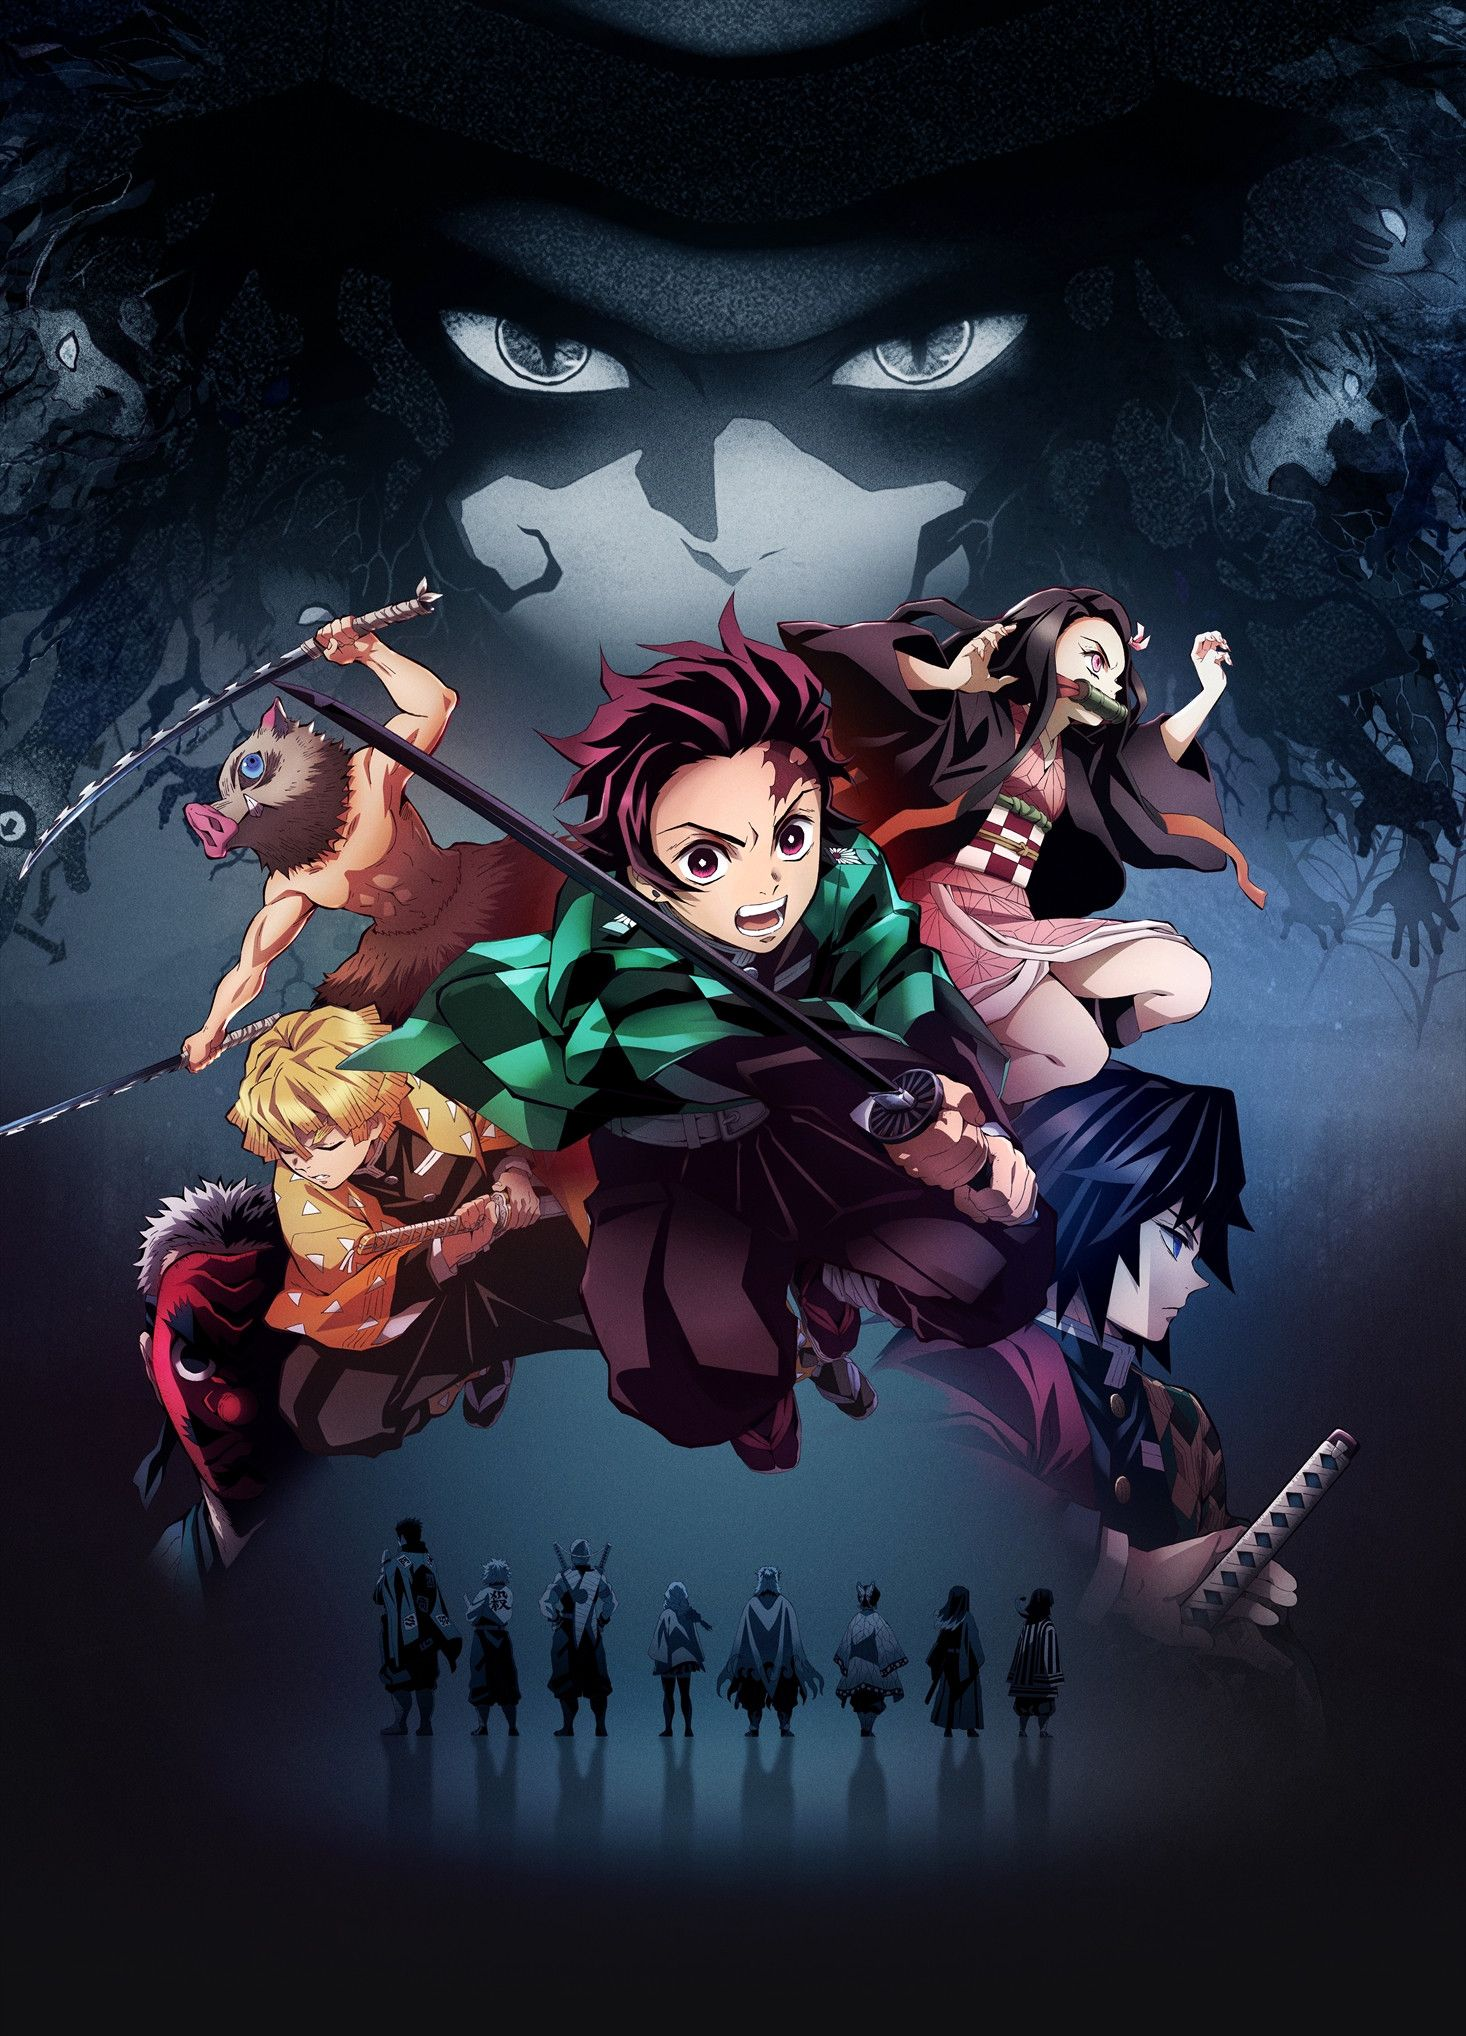 Best Of Kimetsu No Yaiba Zerochan Anime Image Board Anime Demon Anime Anime Images